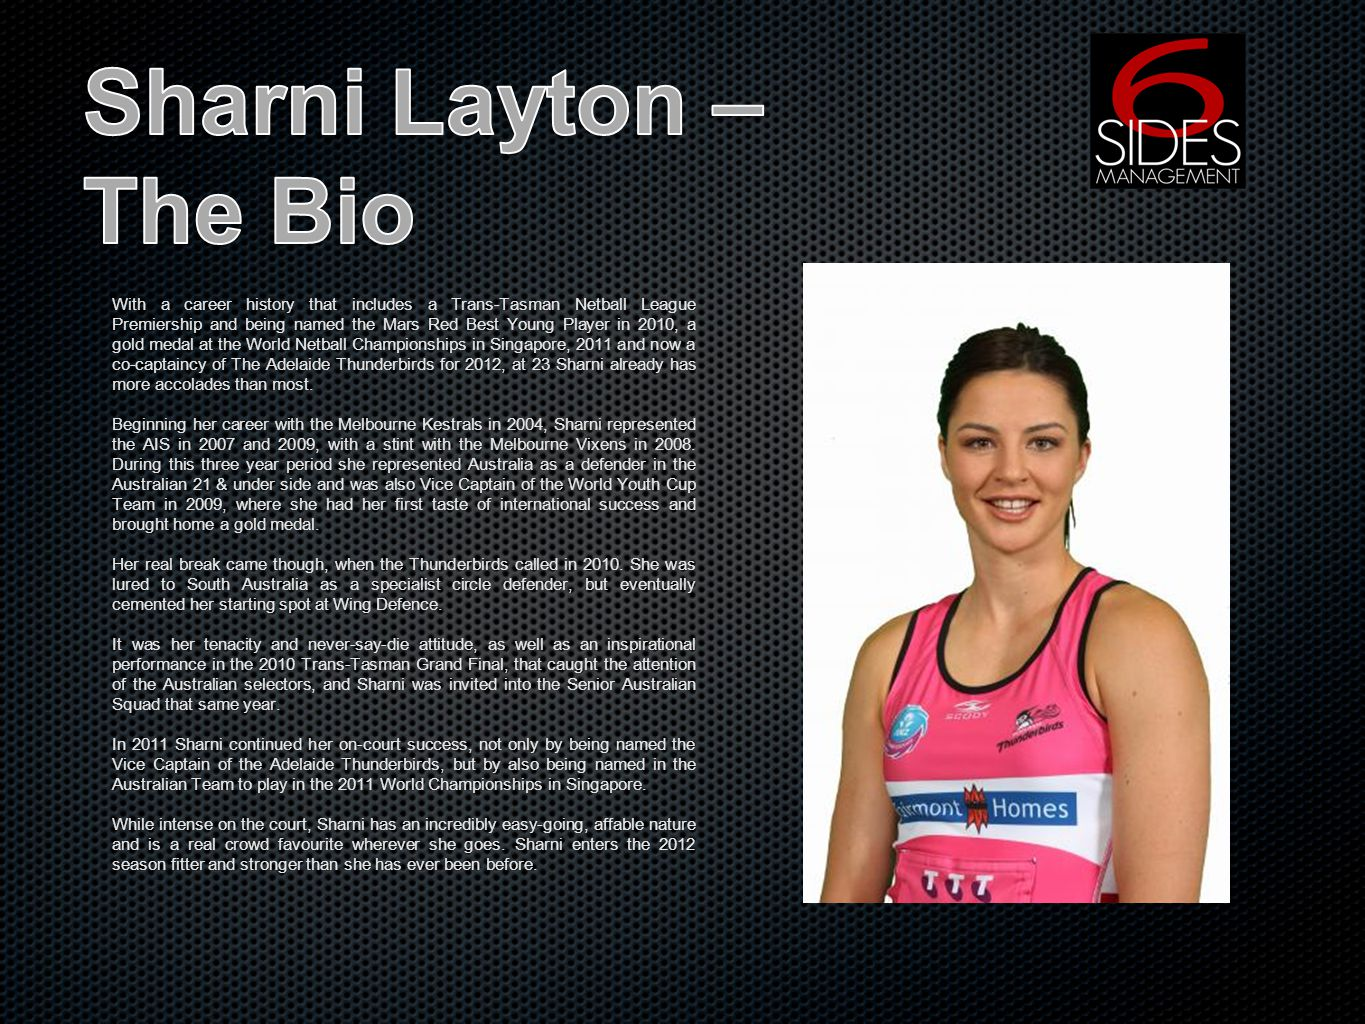 With a career history that includes a Trans-Tasman Netball League Premiership and being named the Mars Red Best Young Player in 2010, a gold medal at